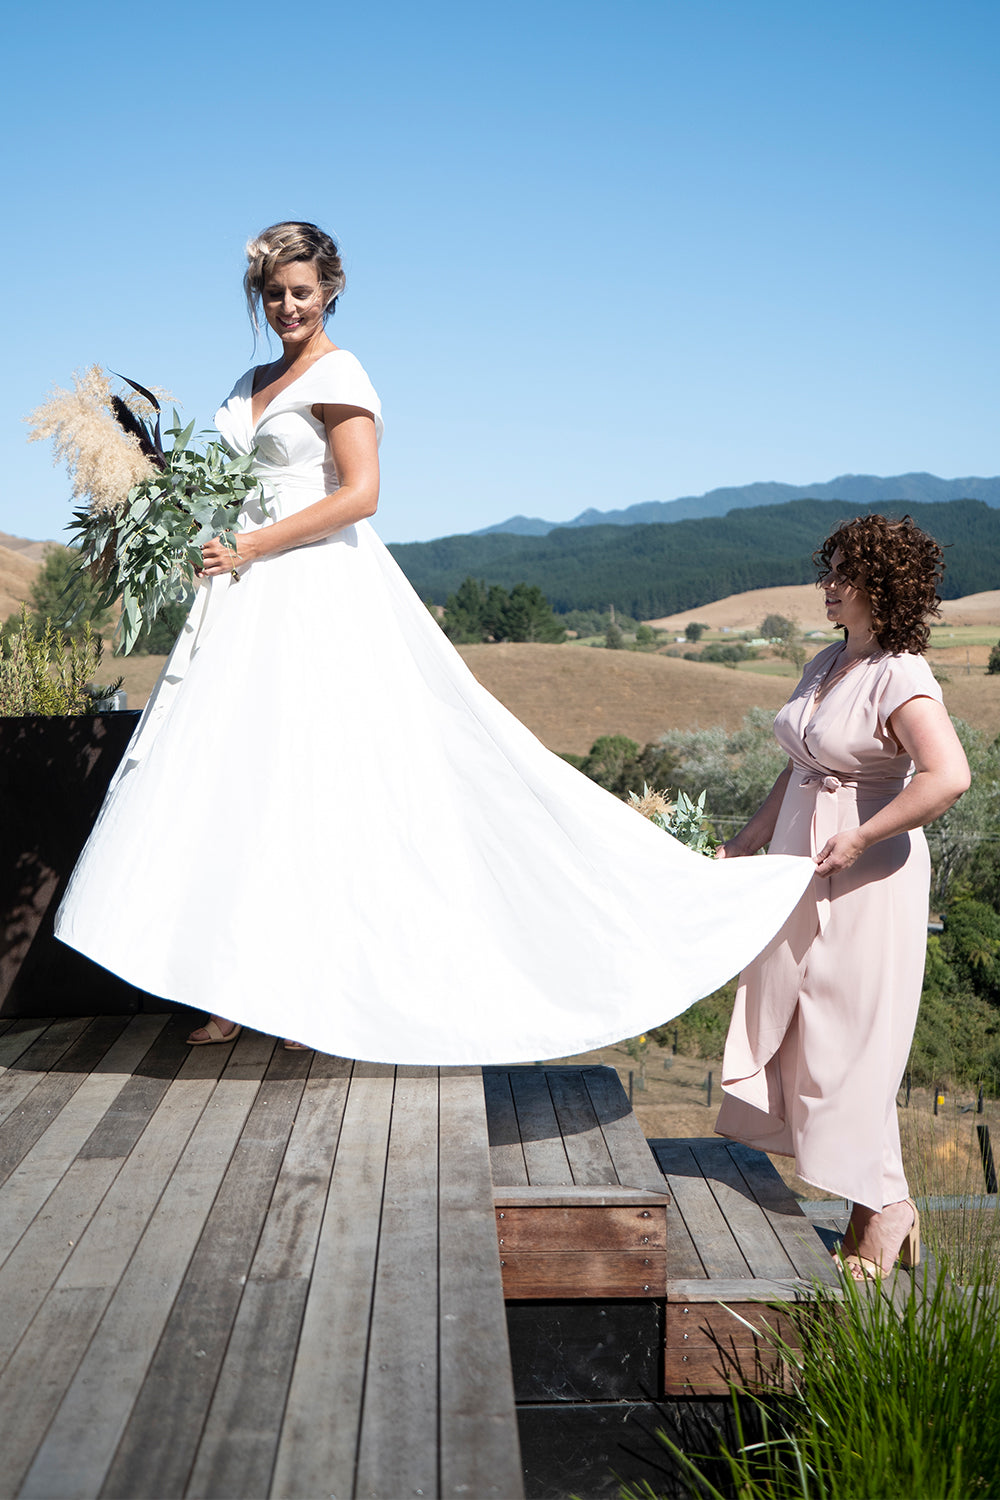 Orchid Dreams Wedding Dress | Annah Stretton Affordable Designer Bridal |  Wedding Dresses NZ | Designer NZ | Modern Bridal Gown | Off The Shoulder Style Wedding Dress